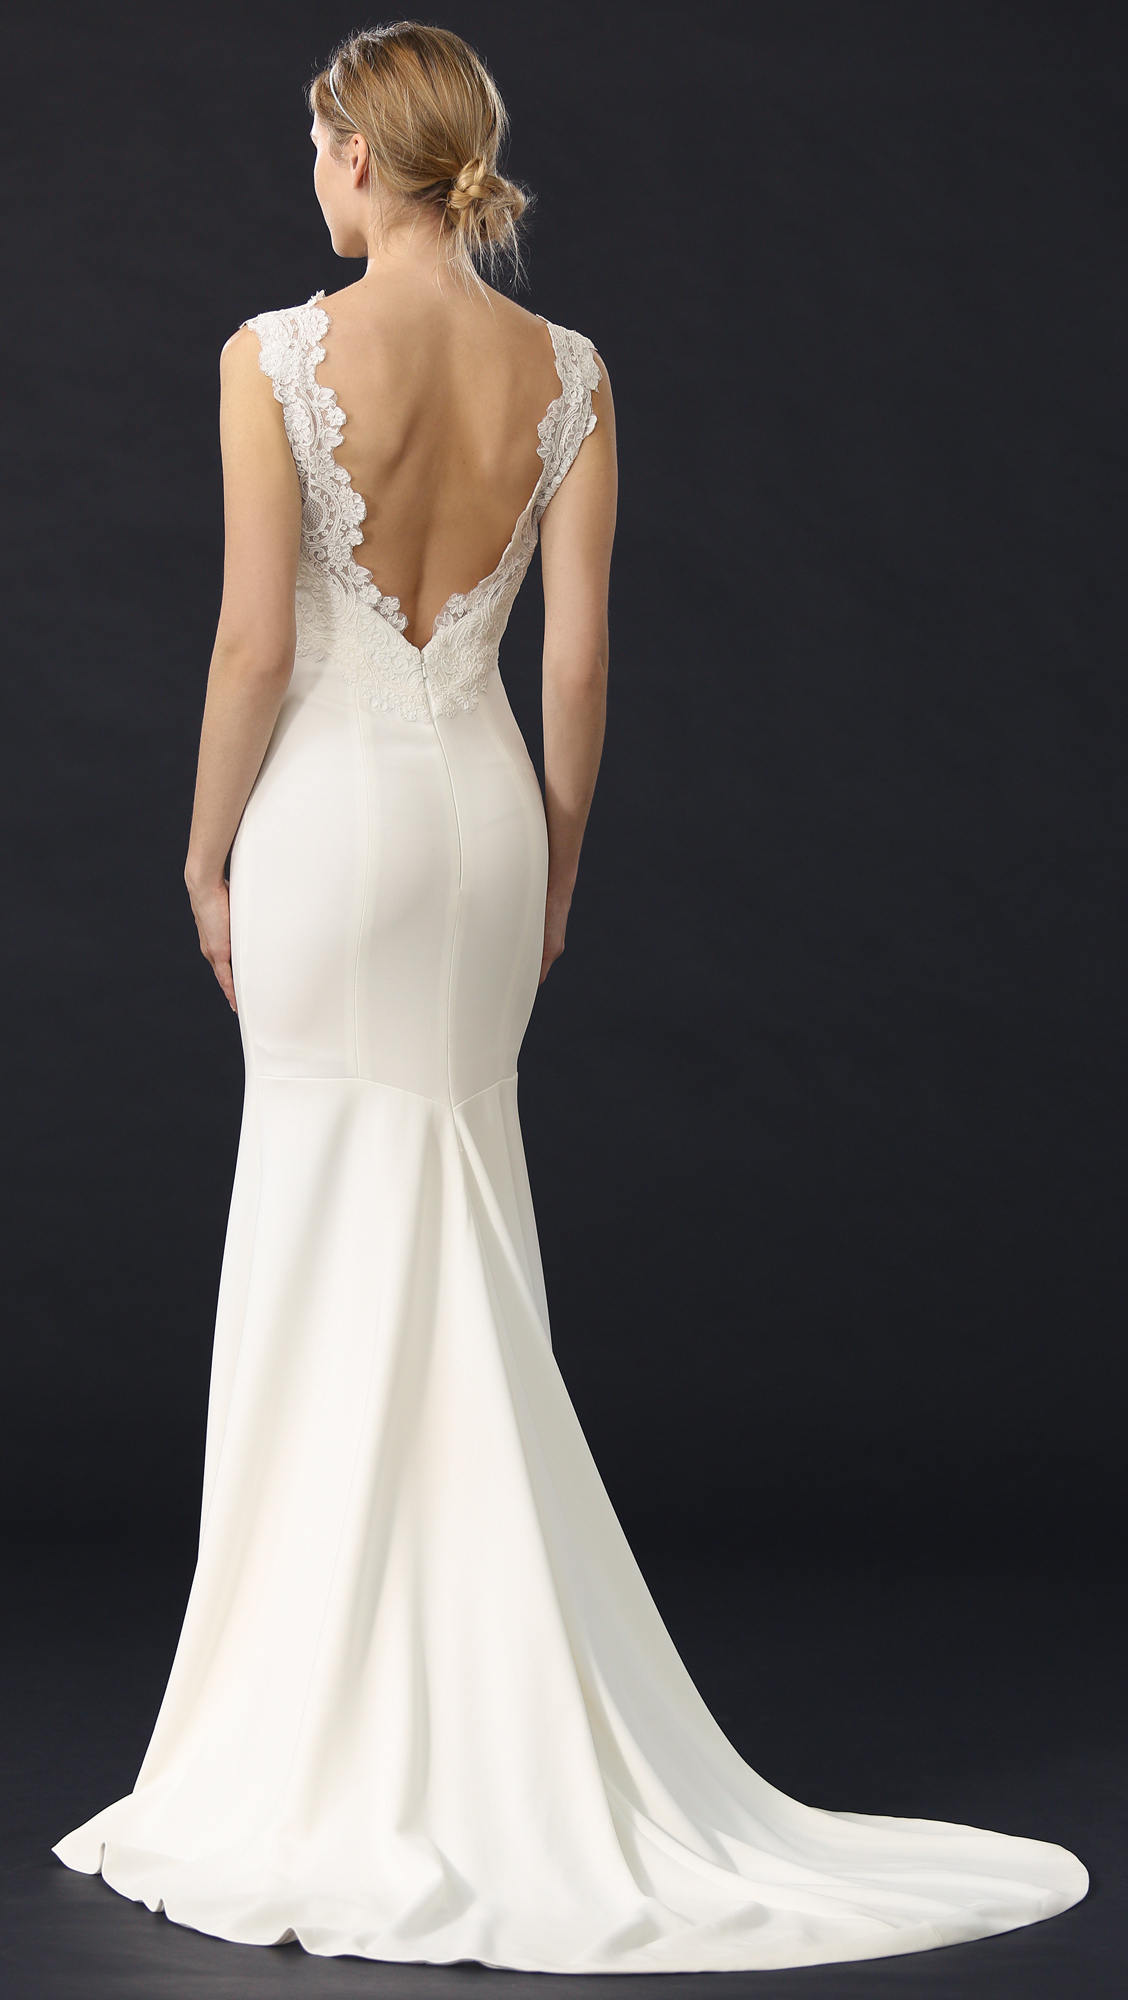 Lyst - Theia Nadia Gown in White